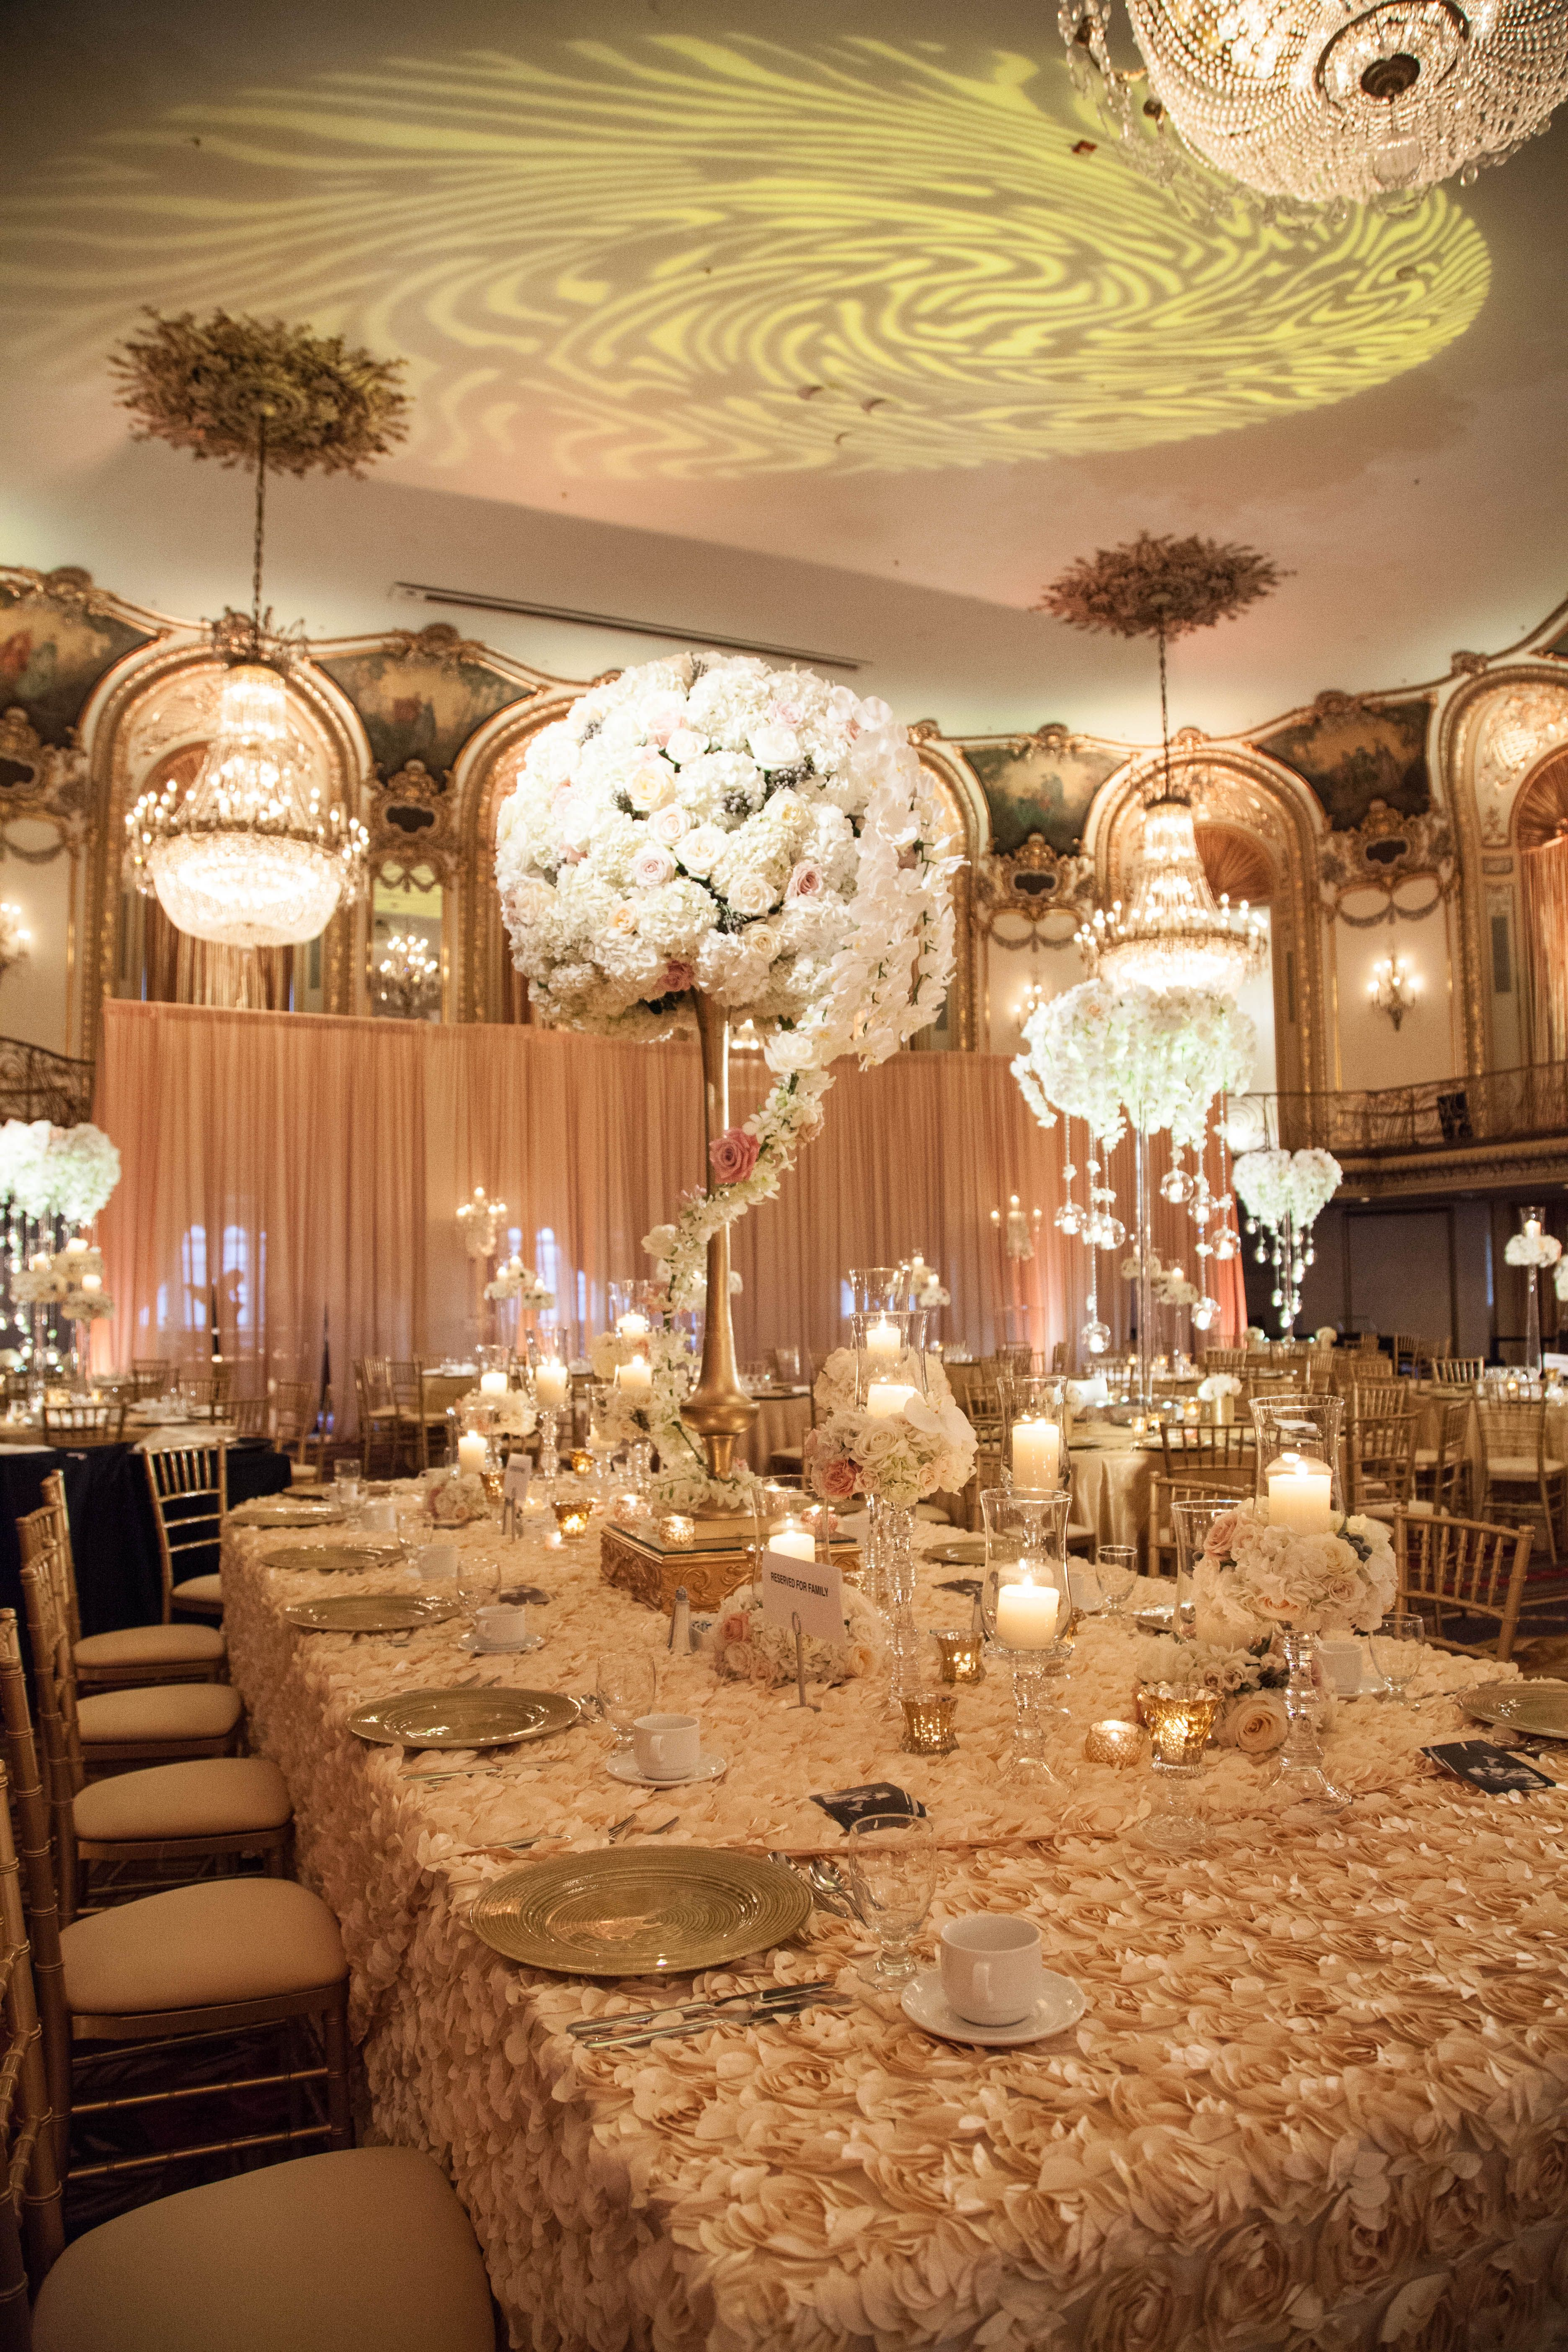 Beautifully Decorated Wedding Reception At The Hilton Chicago Wedding Table Decorations Diy Luxury Wedding Centerpieces Wedding Table